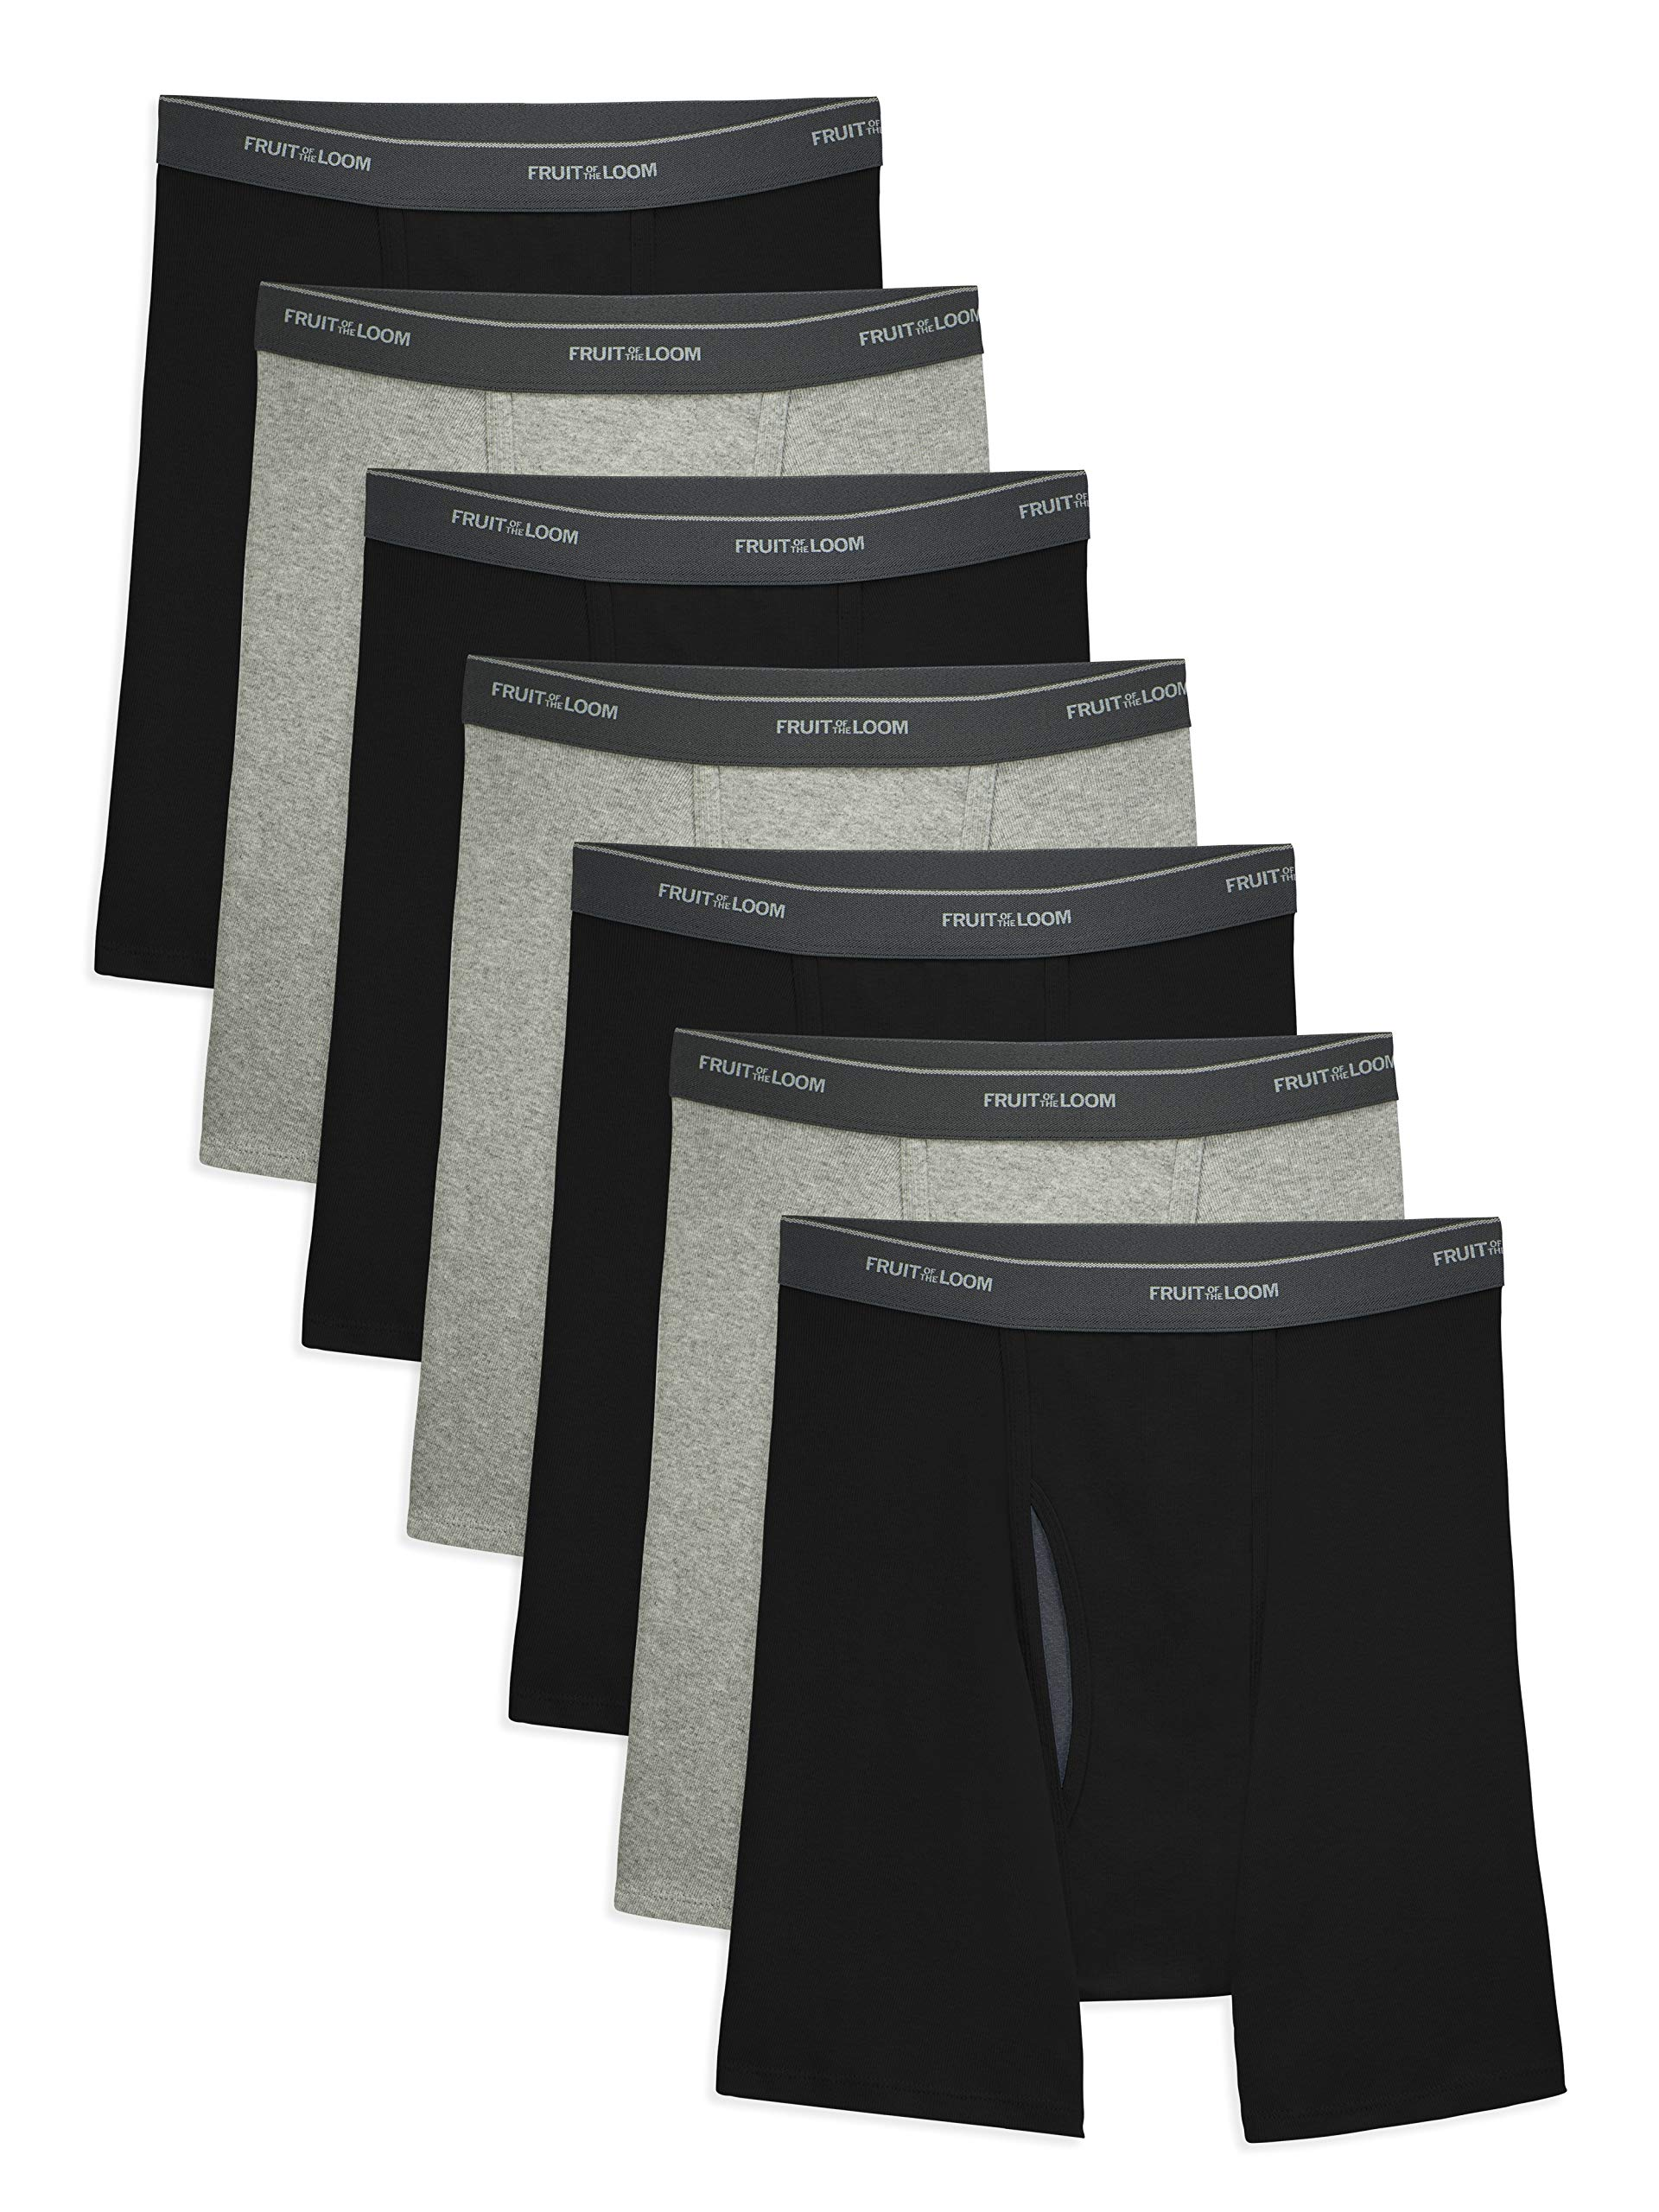 Fruit of the Loom Men's CoolZone Boxer Briefs, 7 Pack - Black/Gray, Large